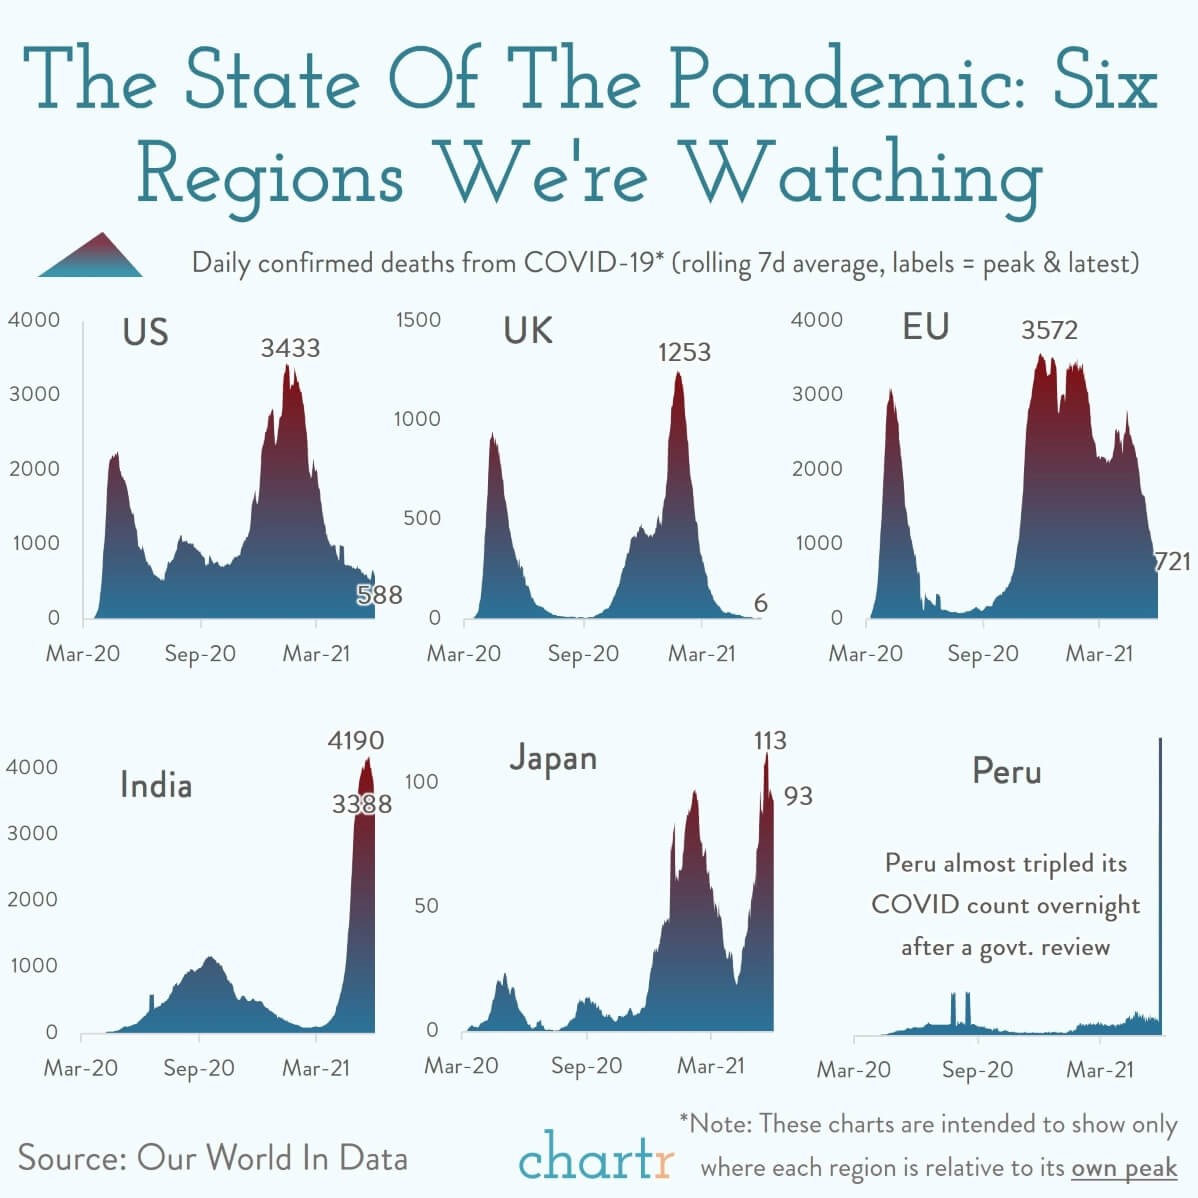 Chartr Daily graph titled 'The State of the Pandemic Regions We're Watching' which compares COVID-19 death rates in the US, UK, EU, India, Japan and Peru.